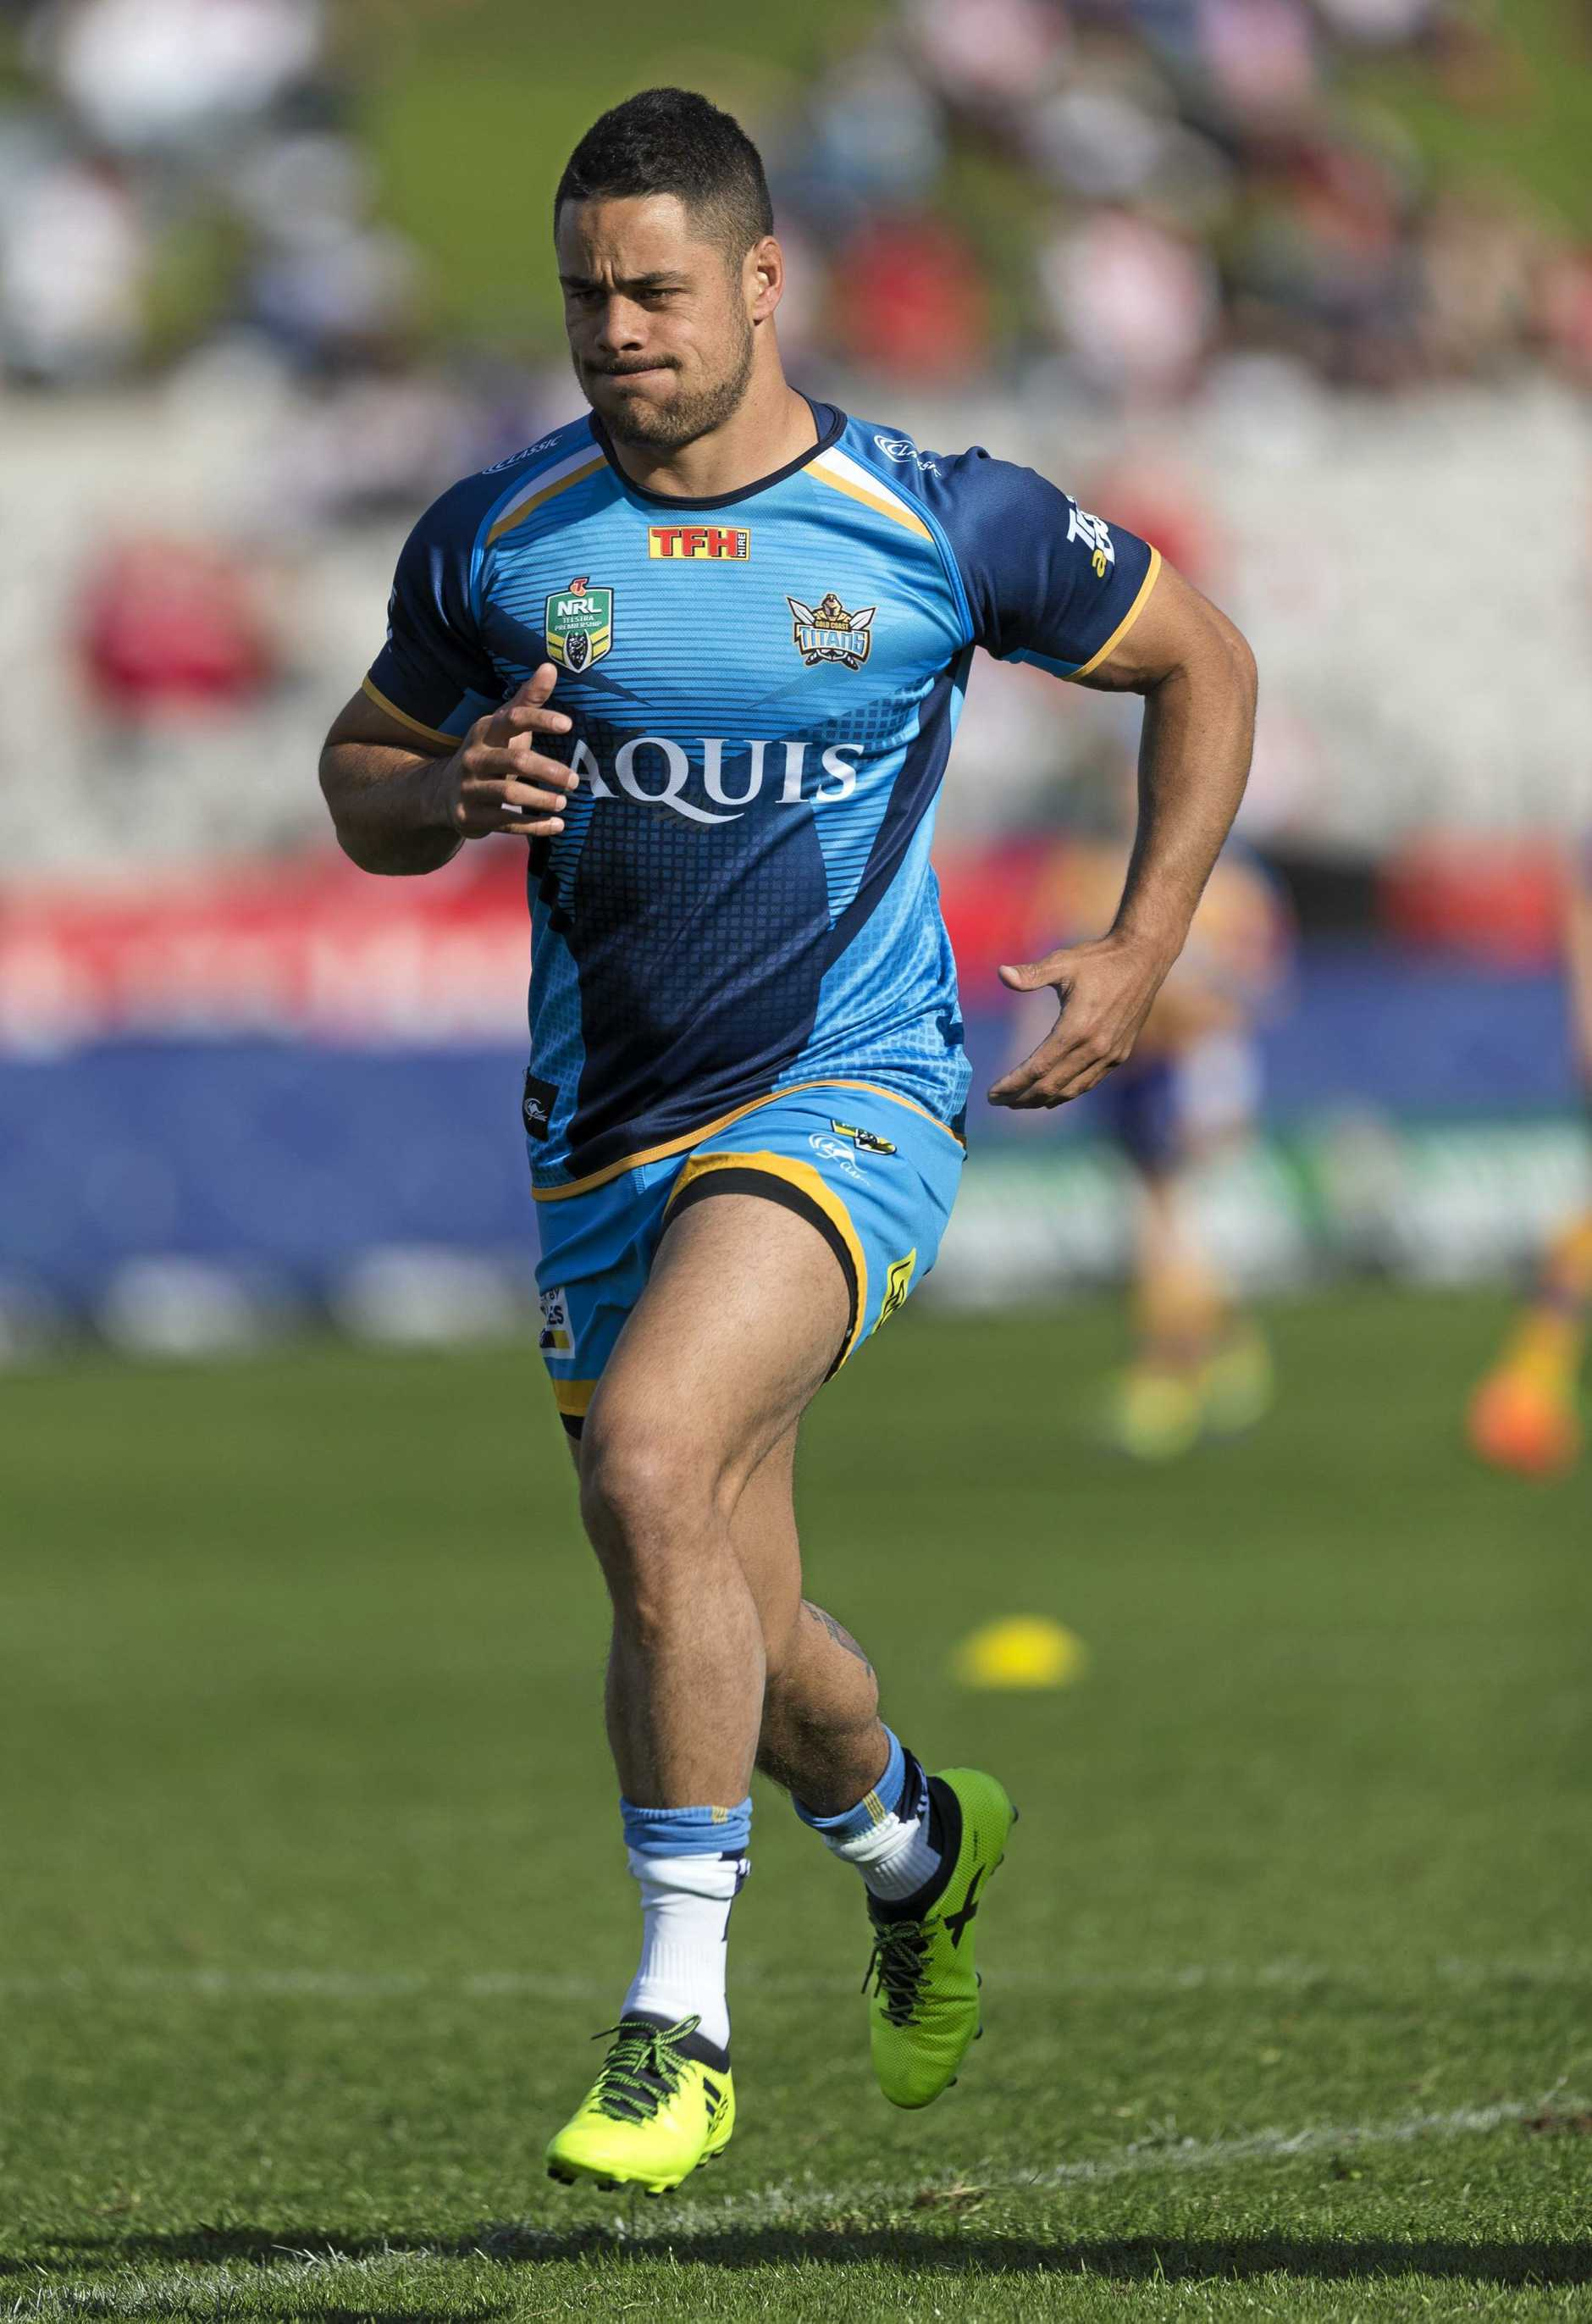 Jarryd Hayne of the Titans warms up before the round 23 clash with the Dragons.